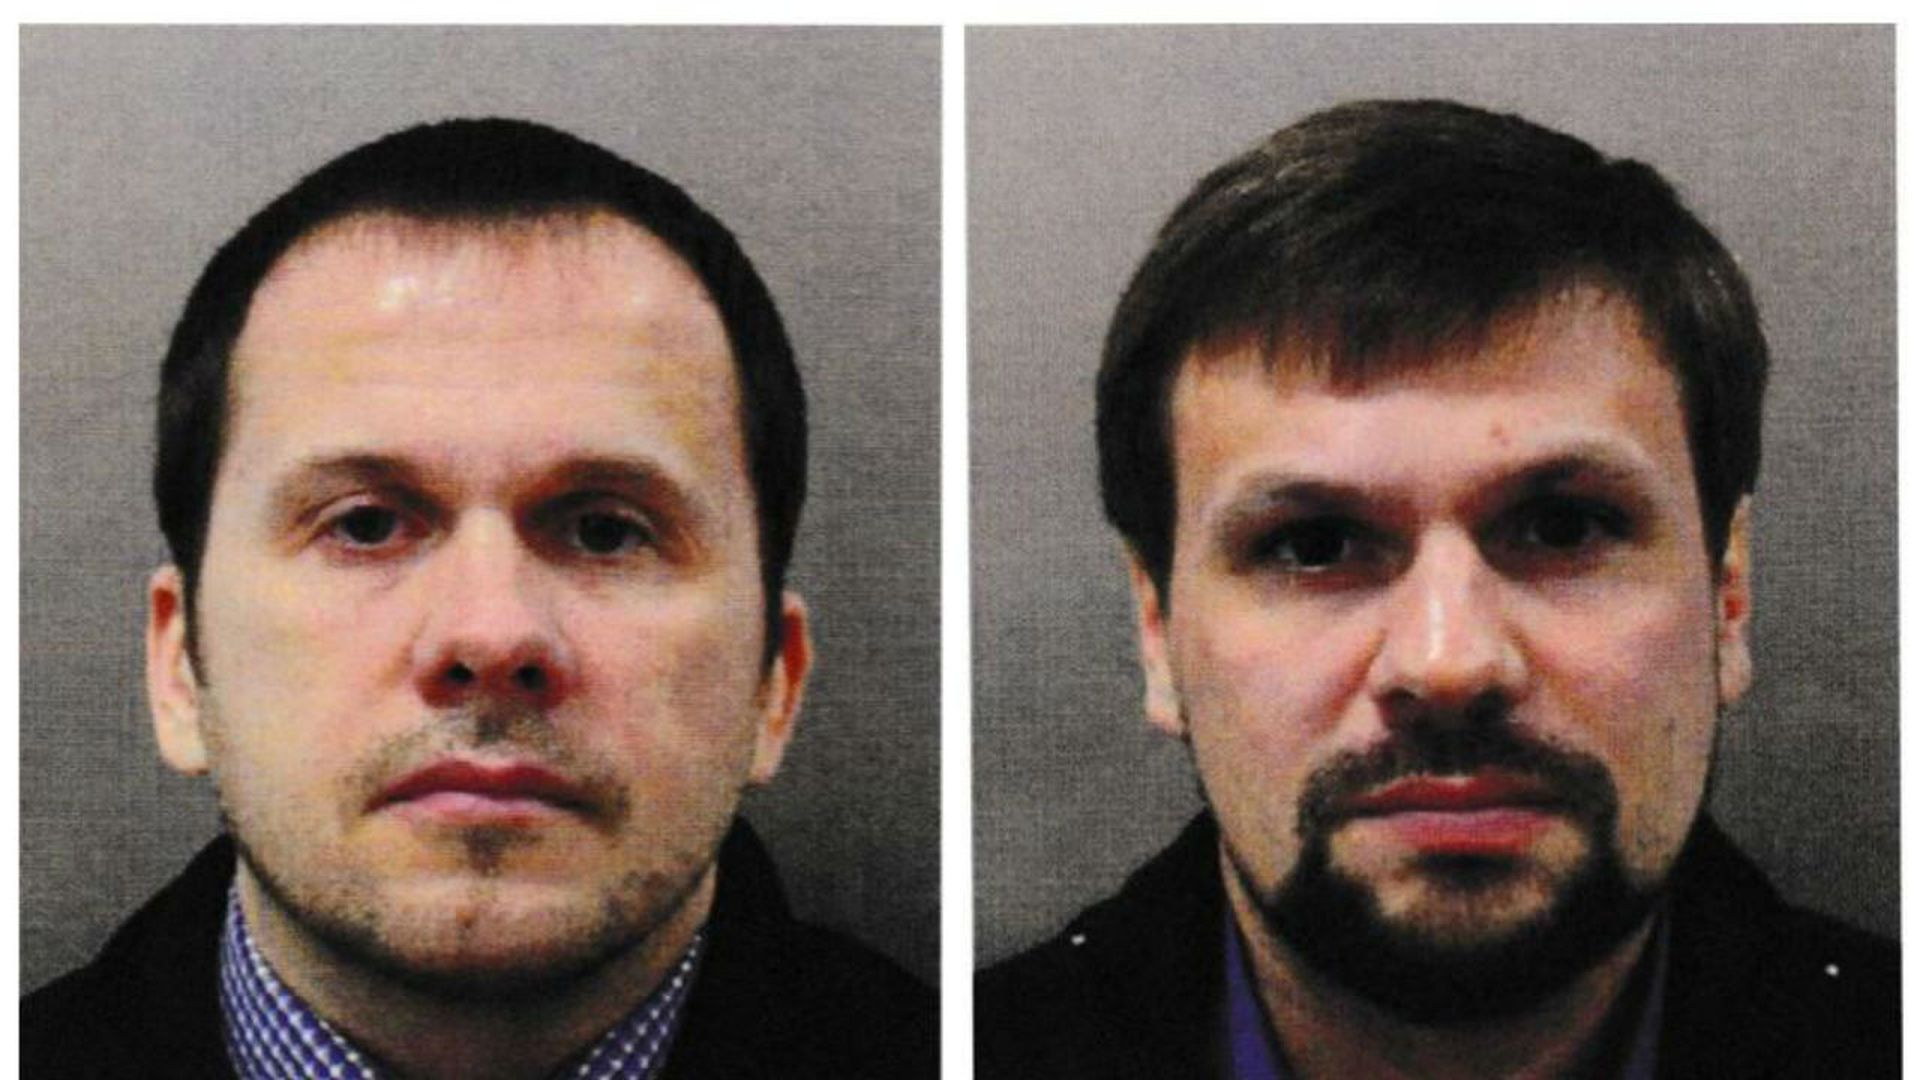 Mugshots of Russians charged in Skripal poisoning